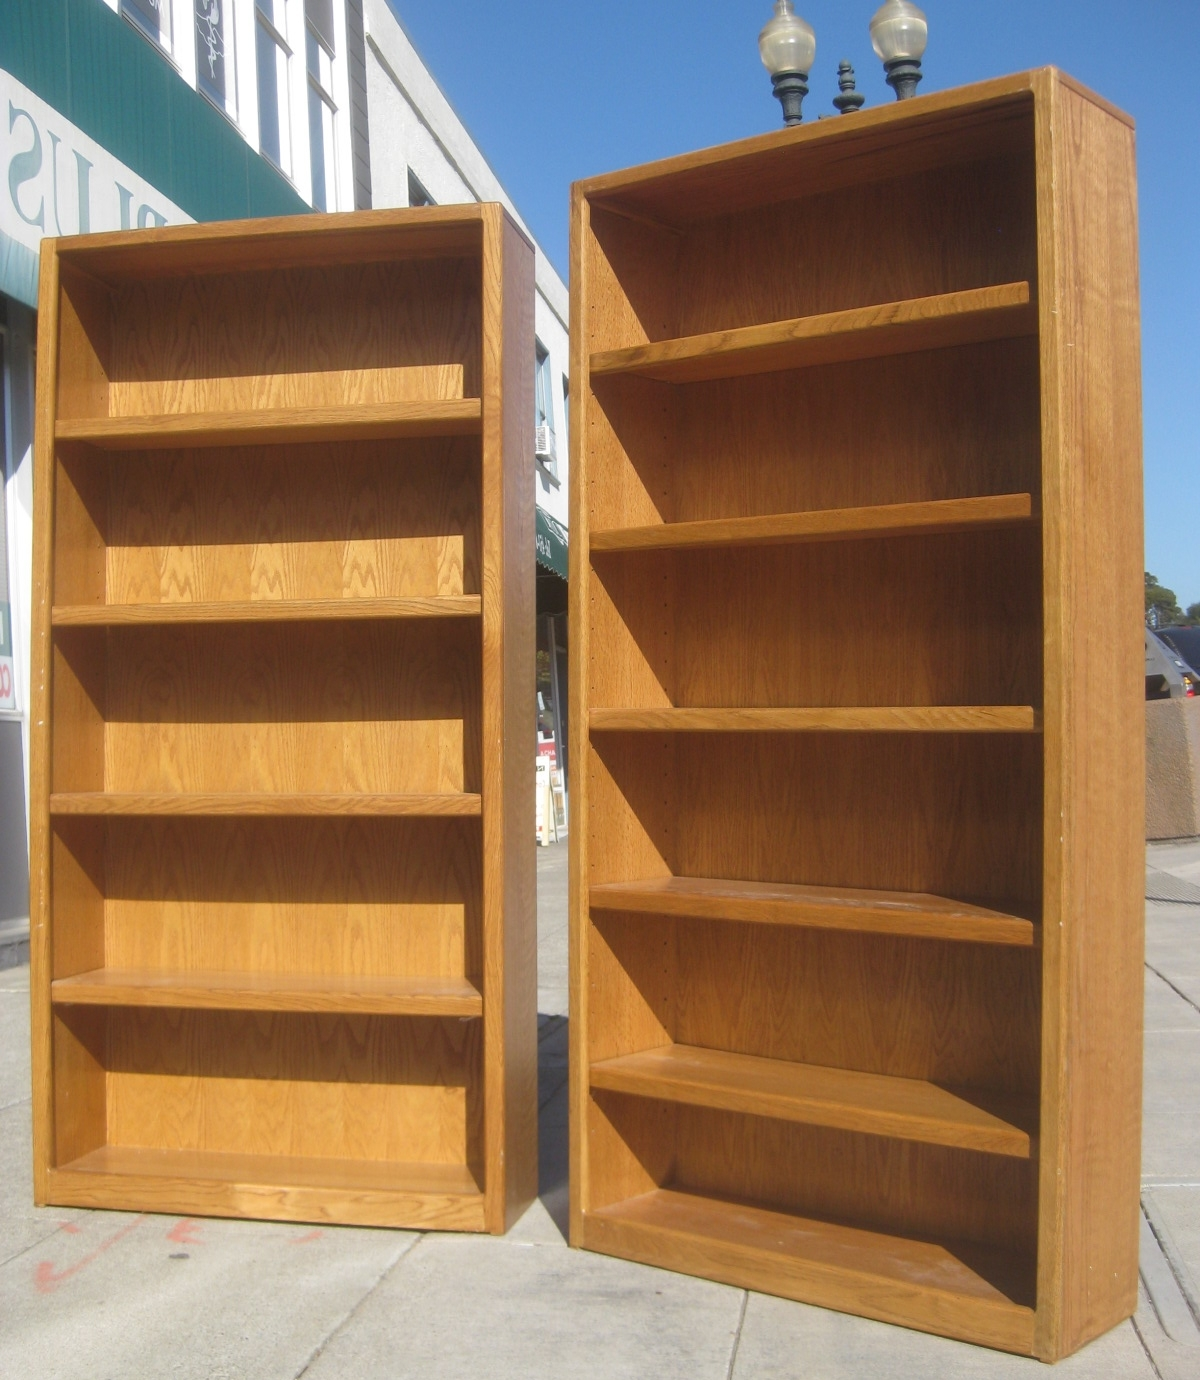 Well Known Uhuru Furniture & Collectibles: Sold – Oak Bookshelf – $70 With Oak Bookshelves (View 8 of 15)